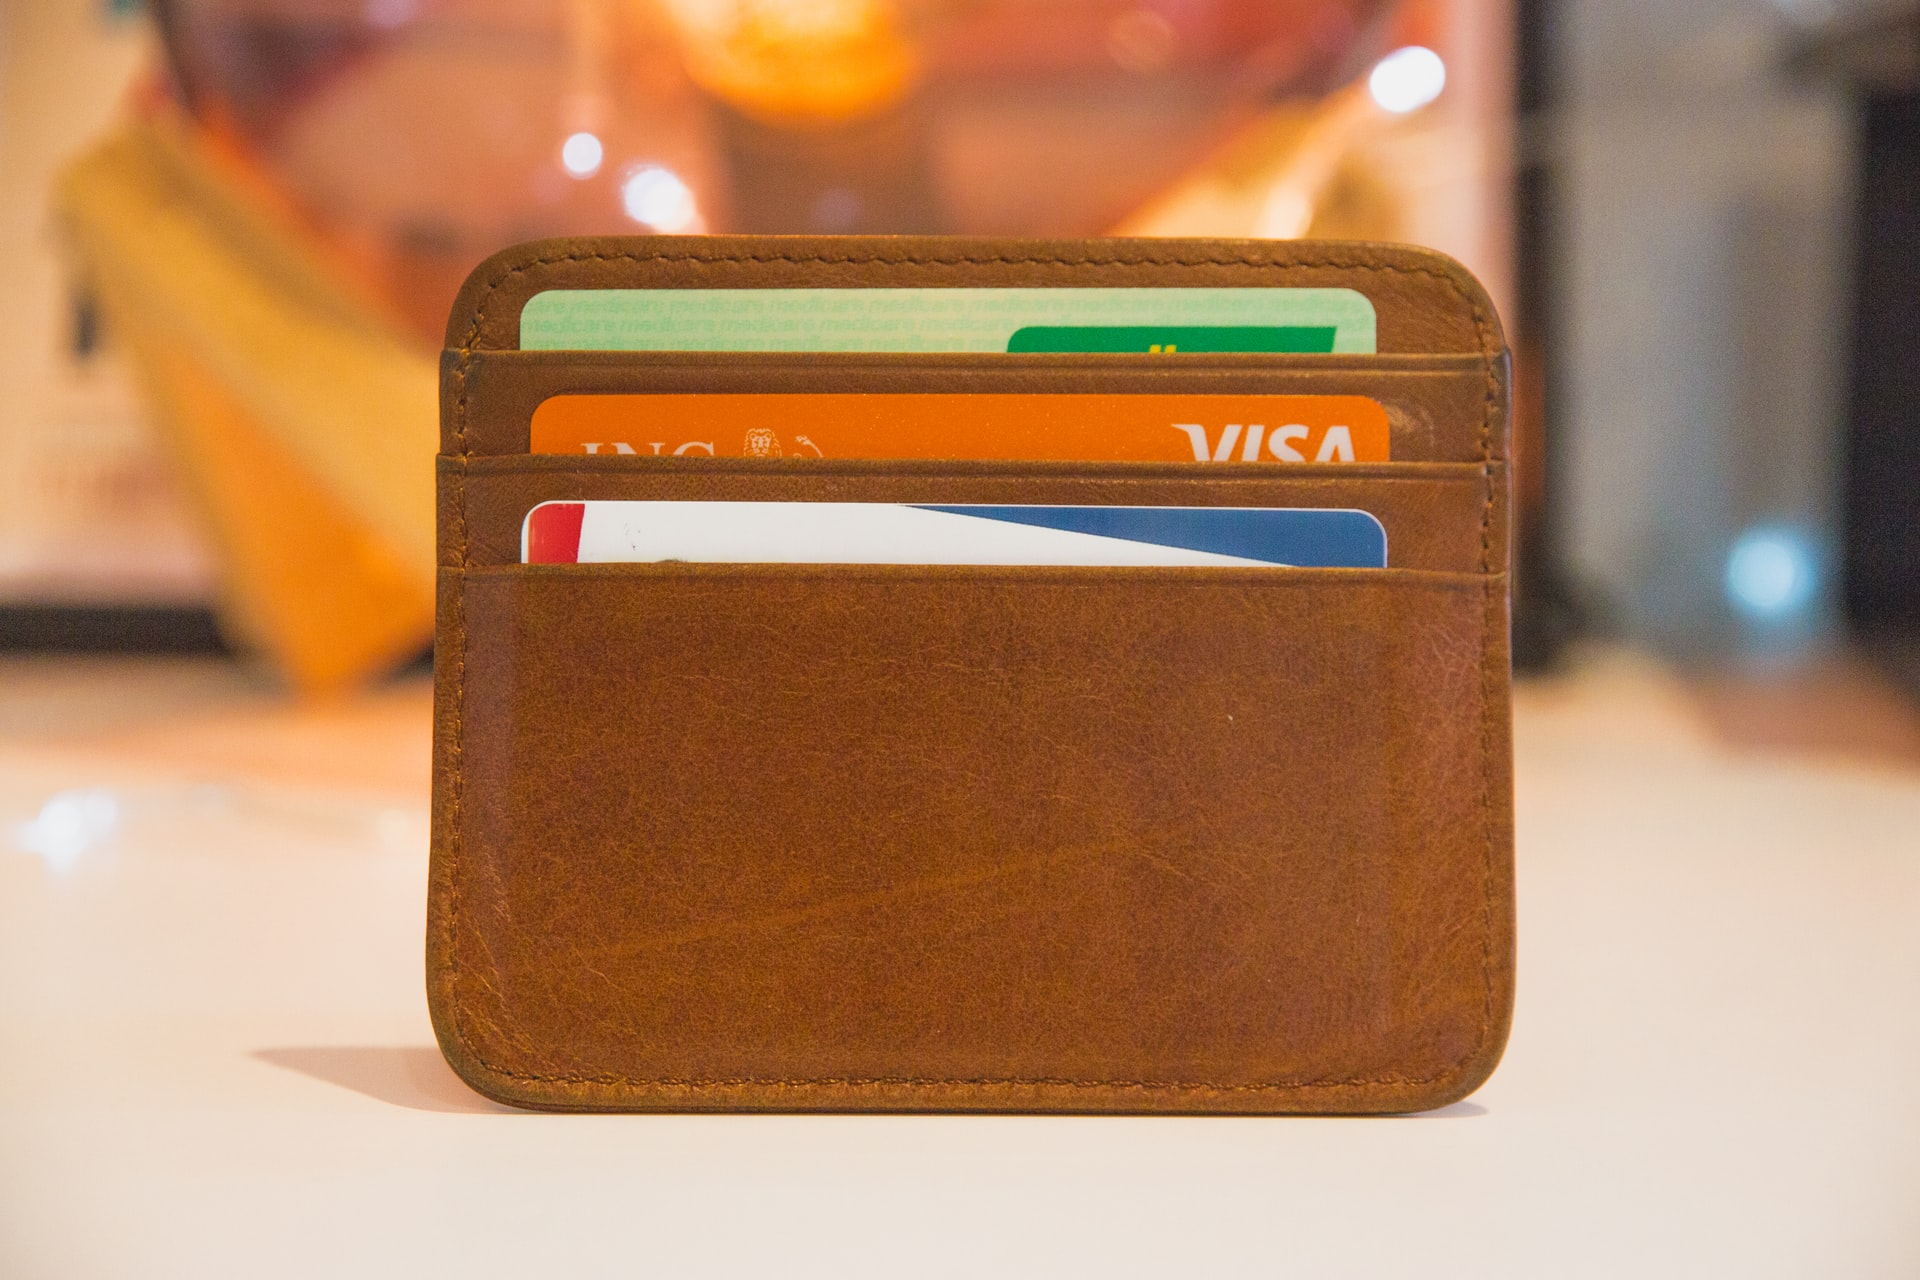 A number of bank cards